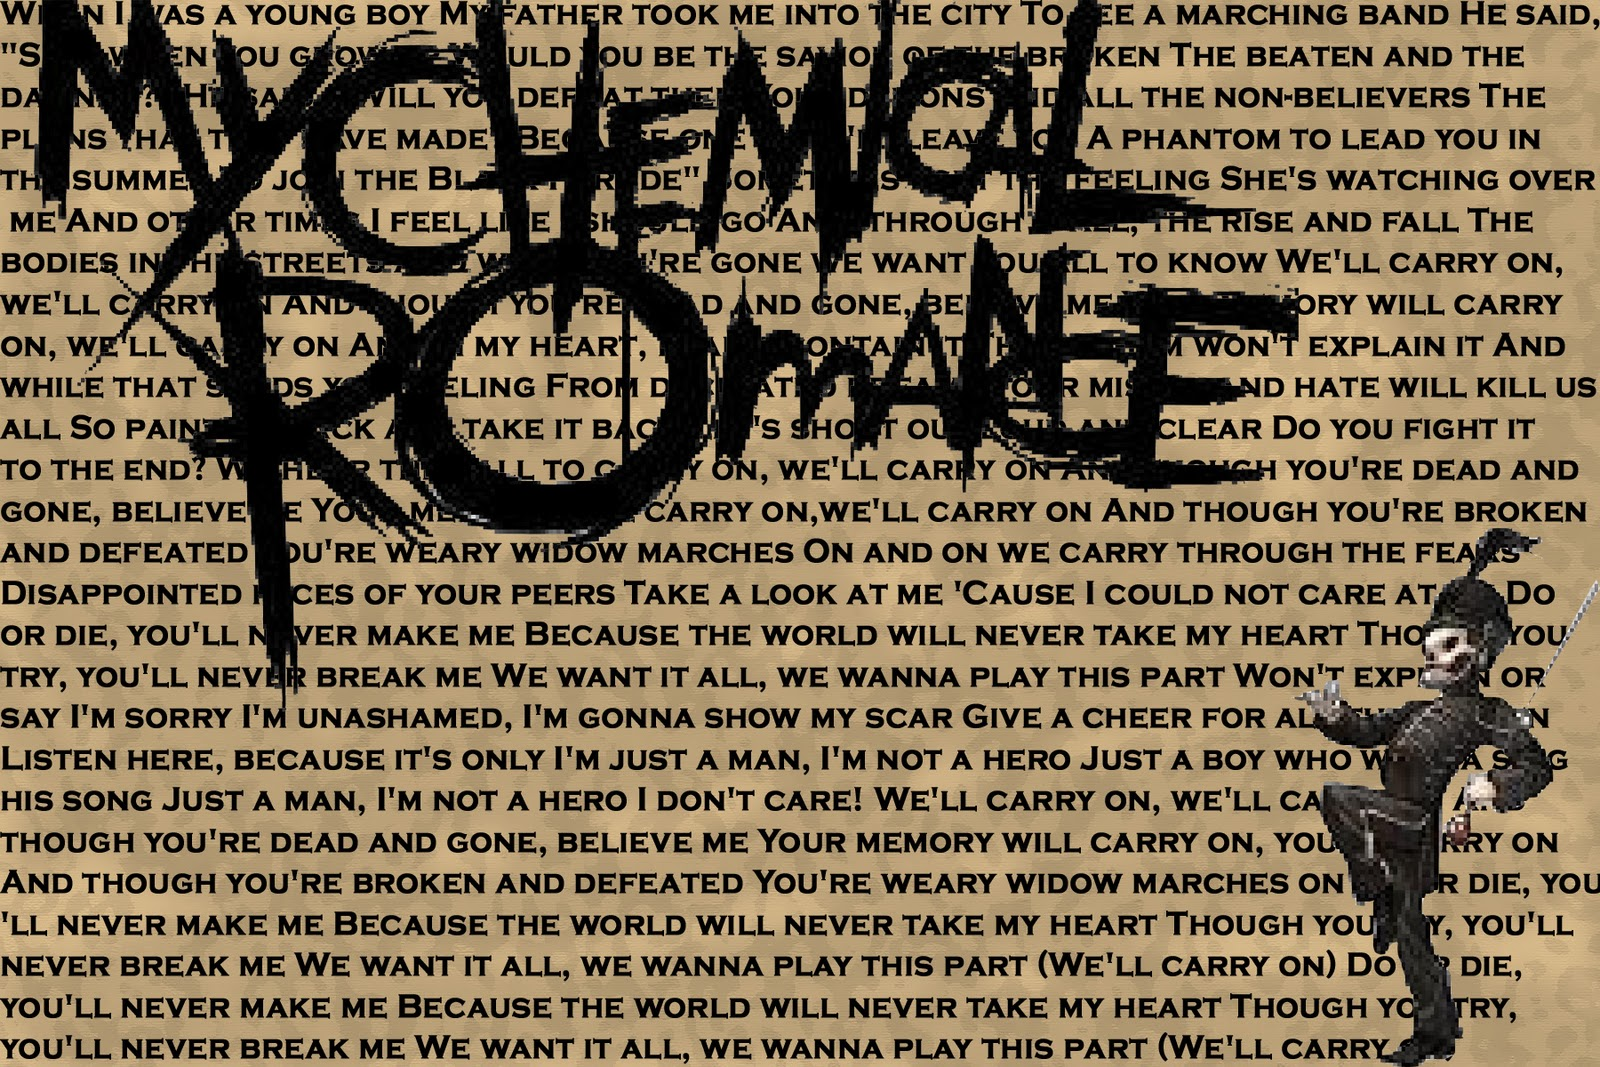 MY CHEMICAL ROMANCE wallpaper ALL ABOUT MUSIC 1600x1067